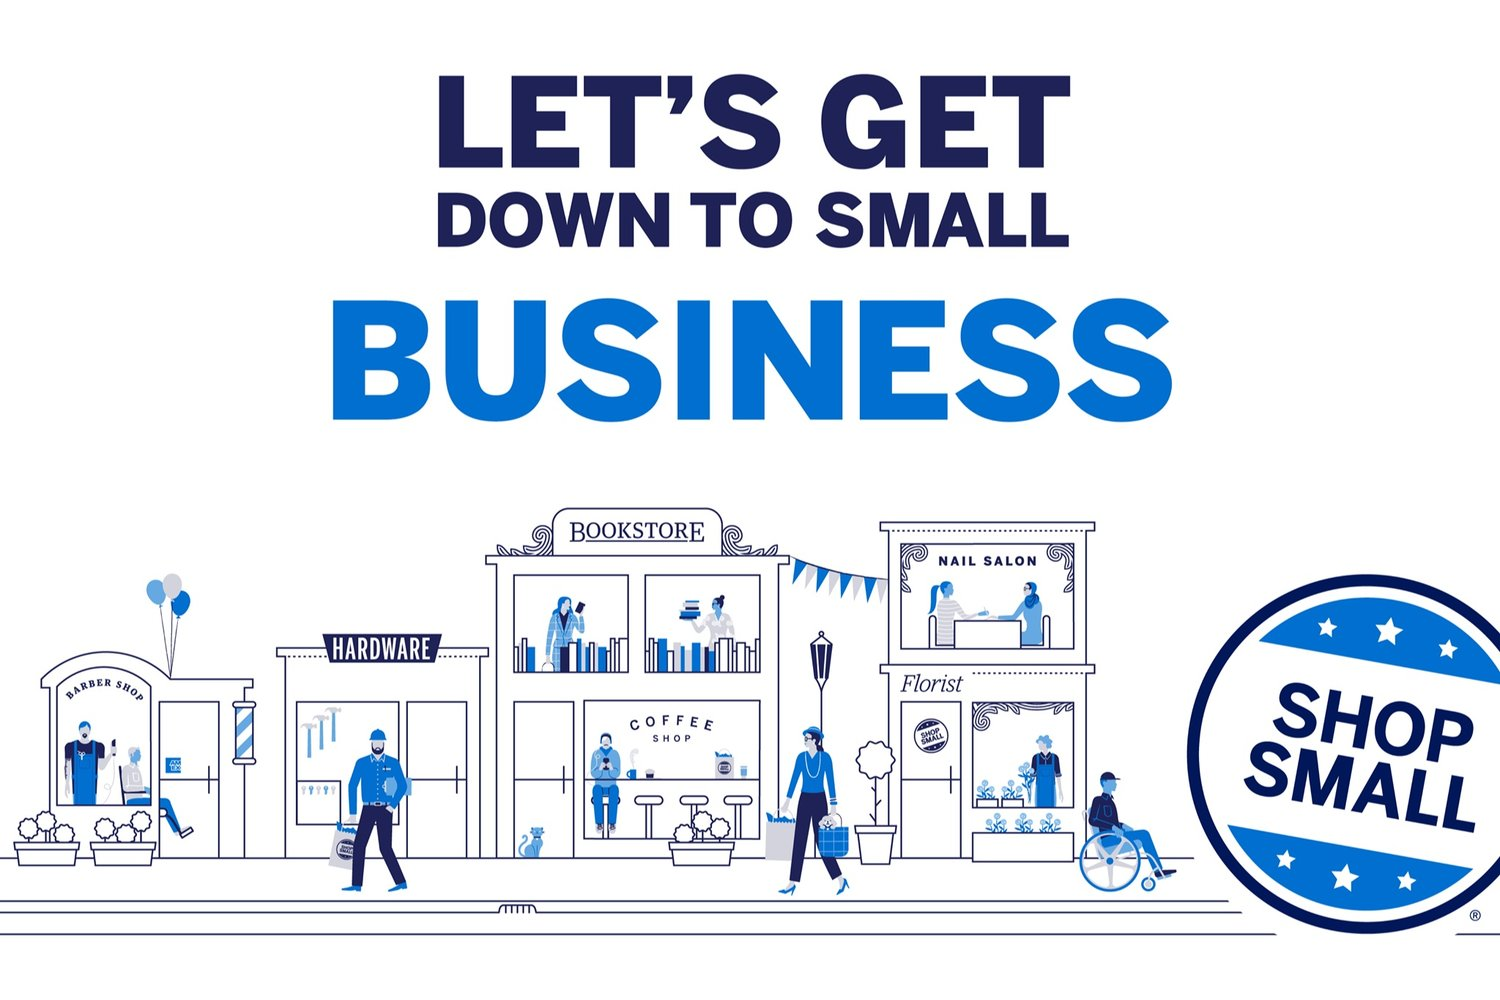 Small Business Saturday 2020.Top Tips To Get Ready For Small Business Saturday Proudly